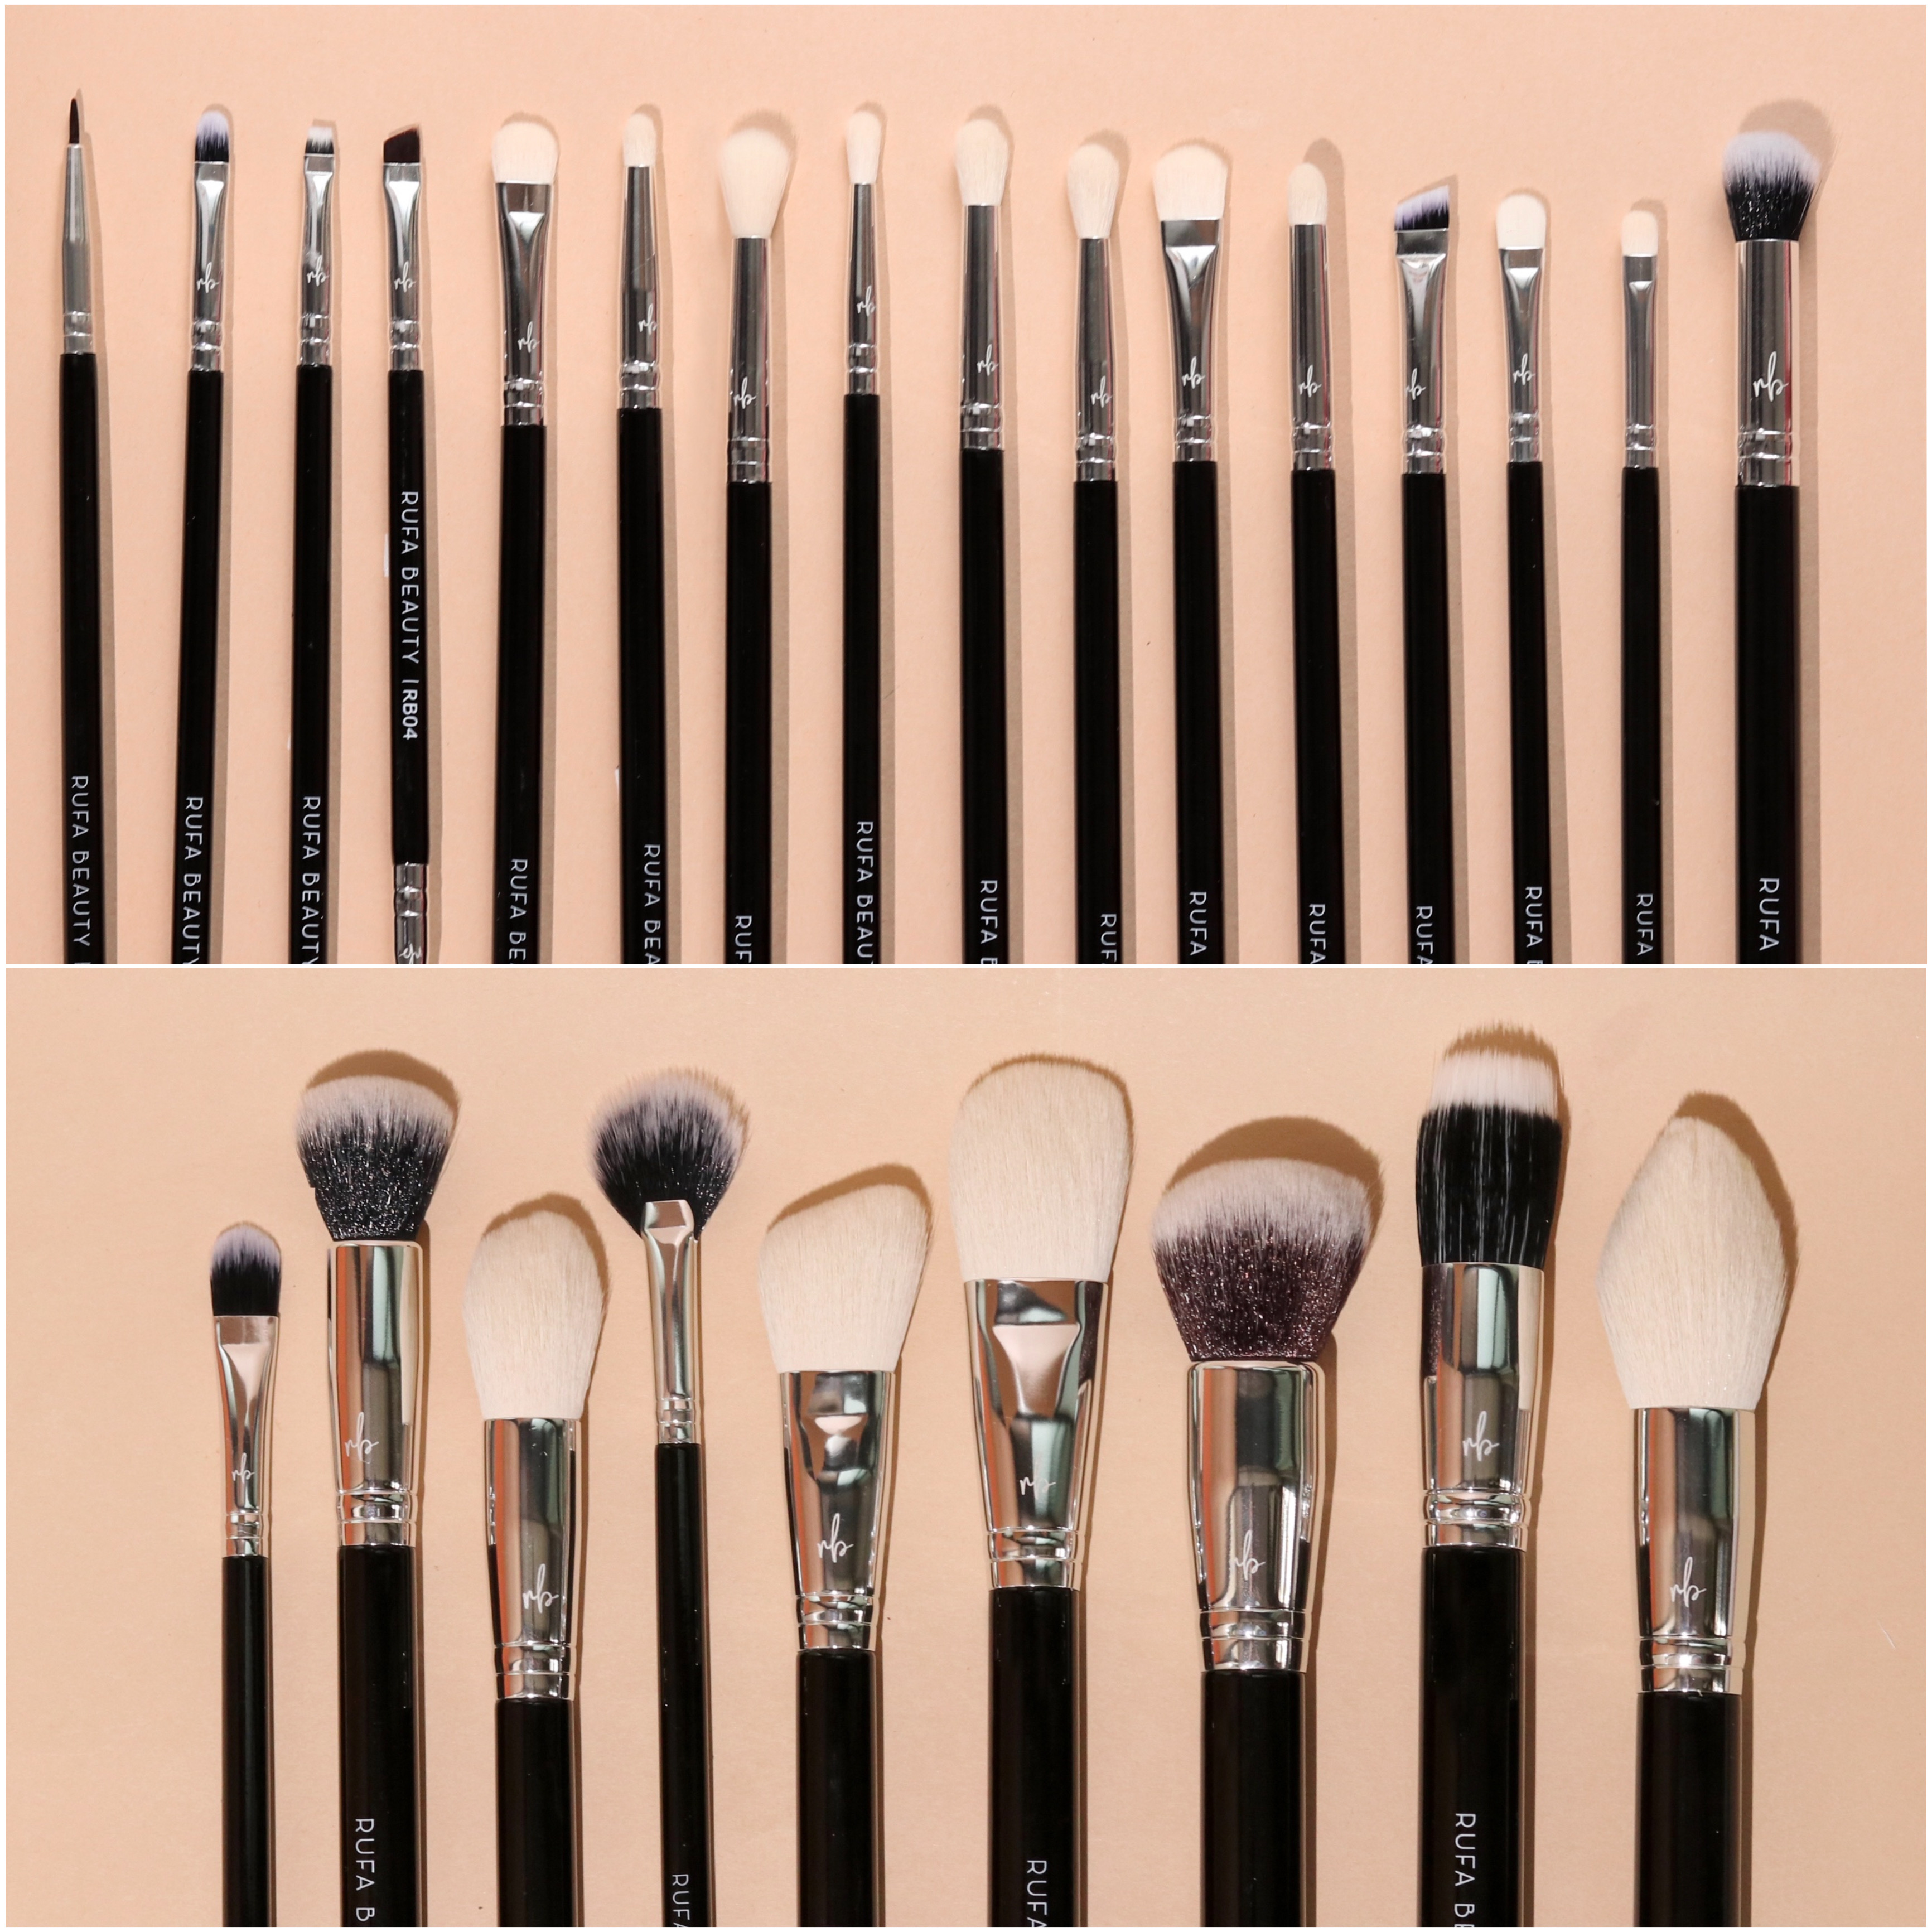 New Remastered Pro Brushes – Complete Set of 25 Professional makeup Brushes